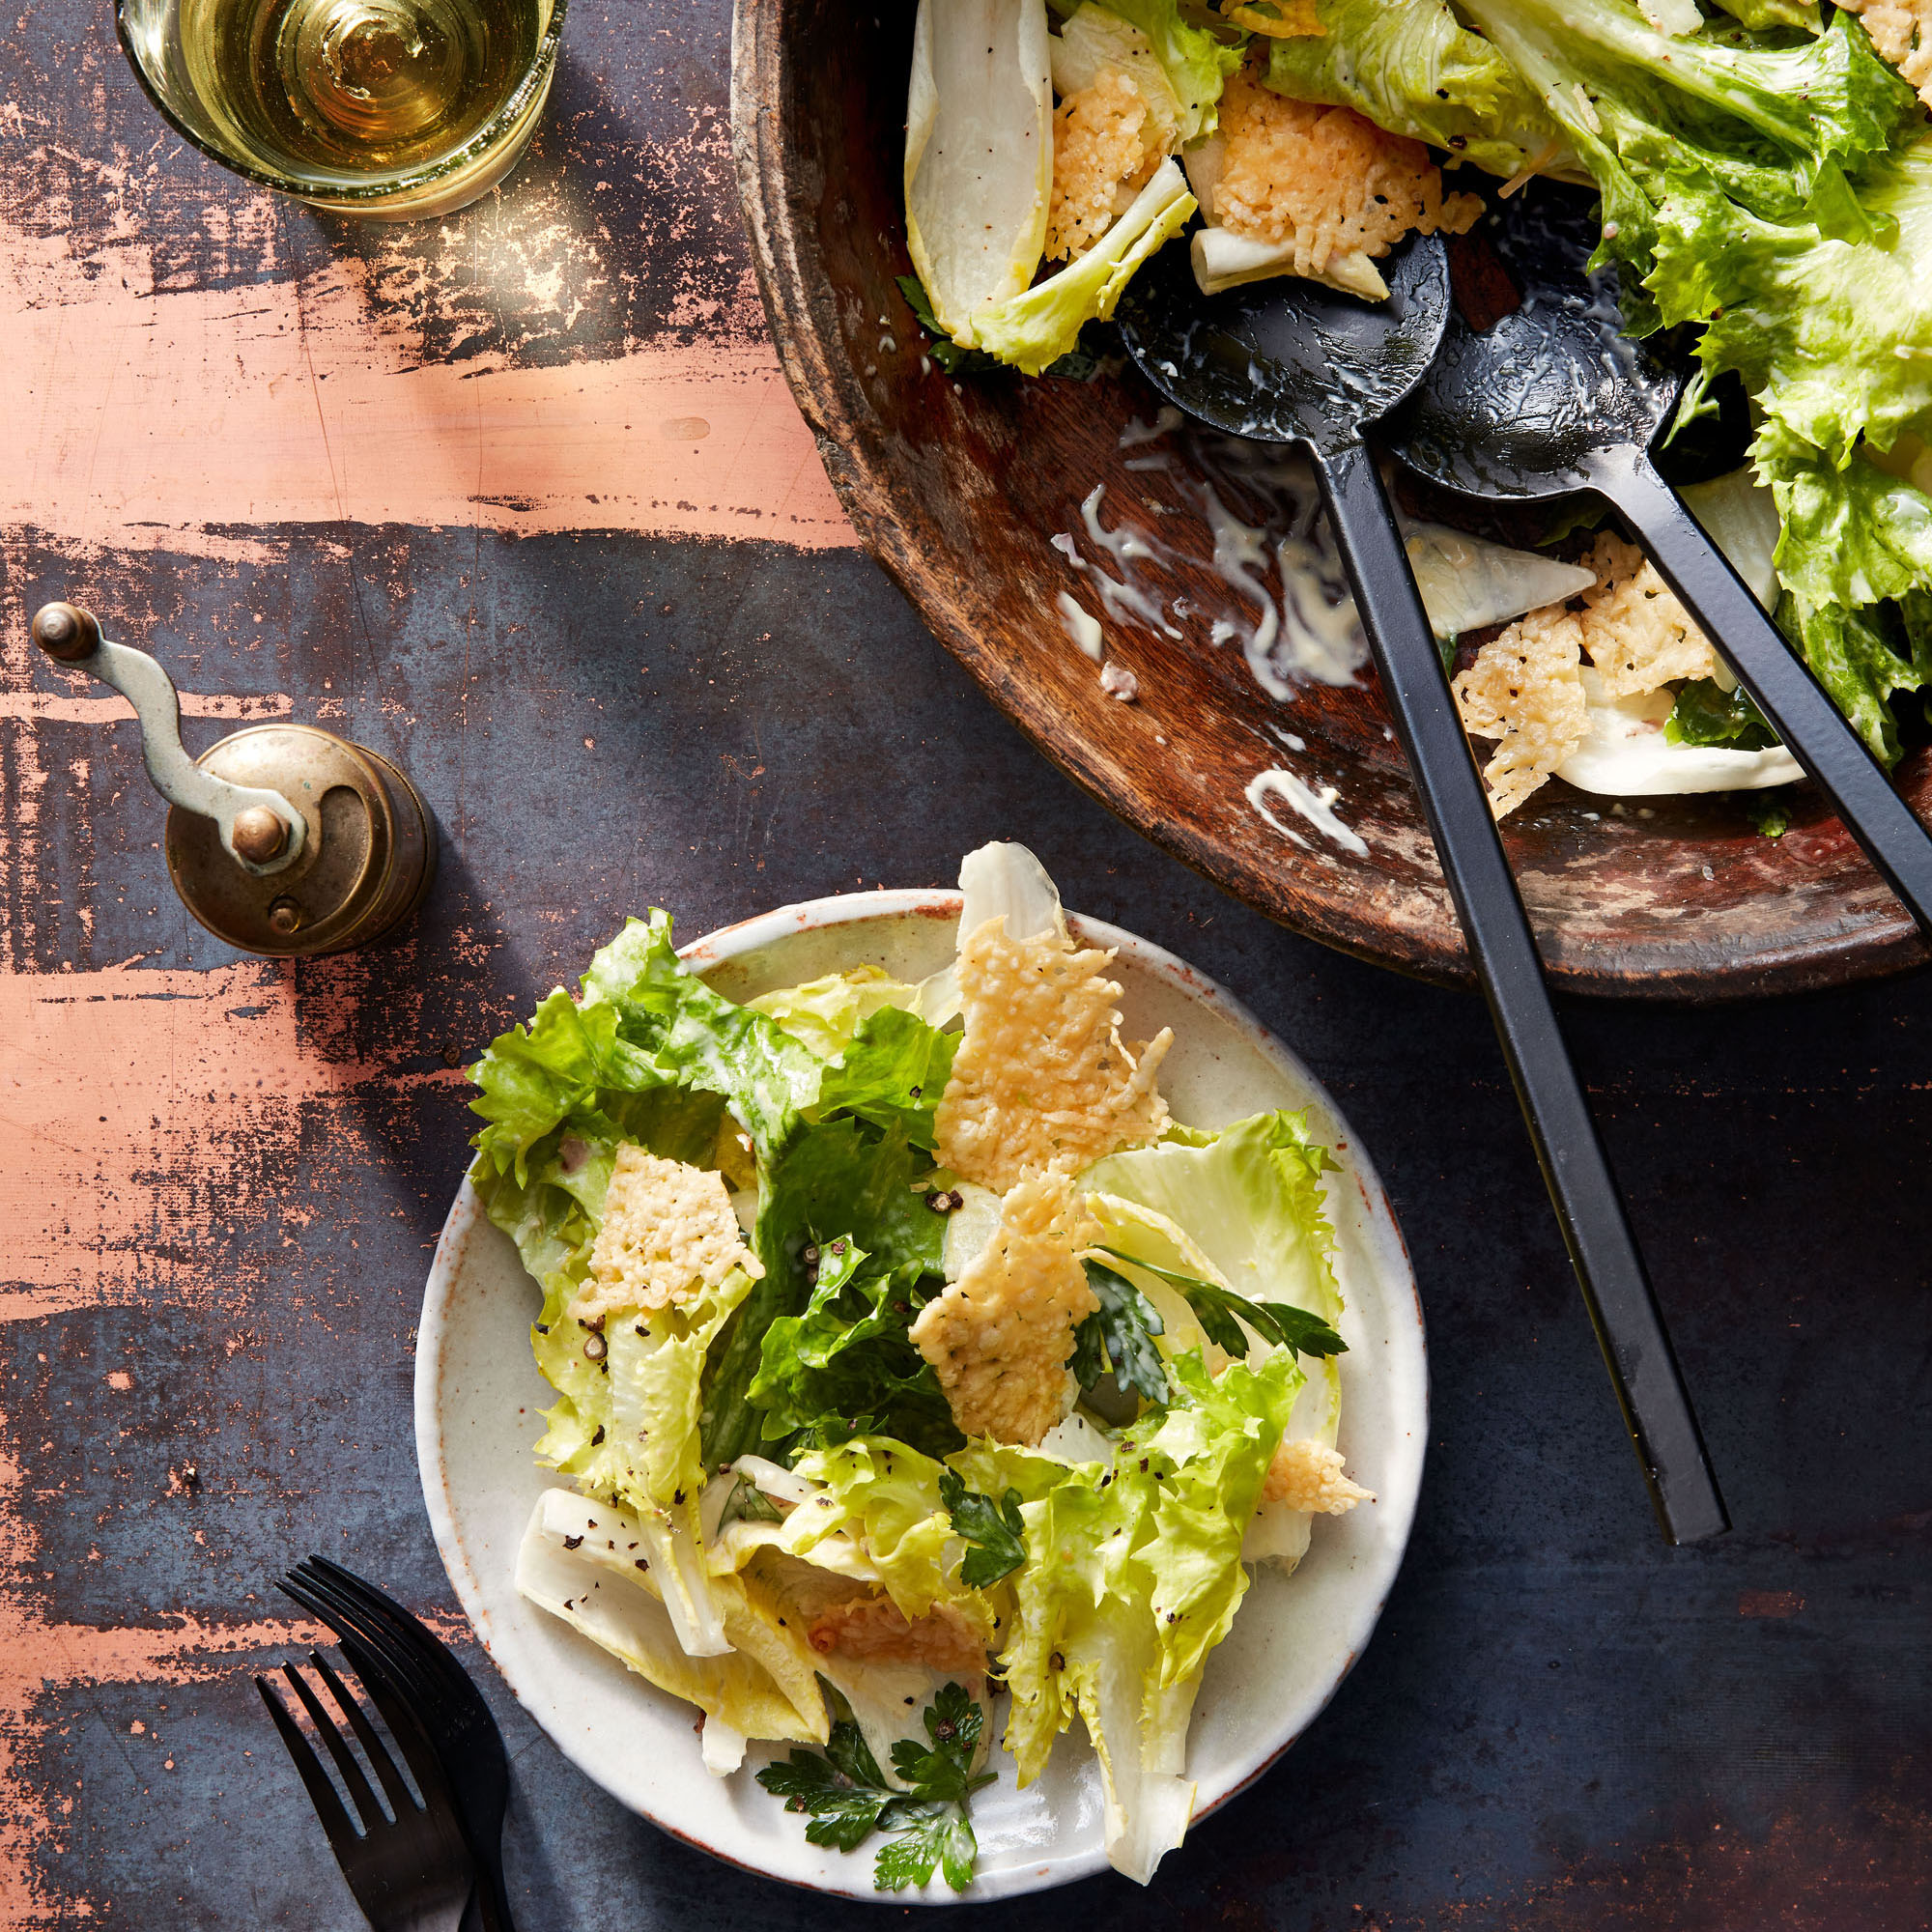 Endive & Escarole Caesar with Frico served in bowl